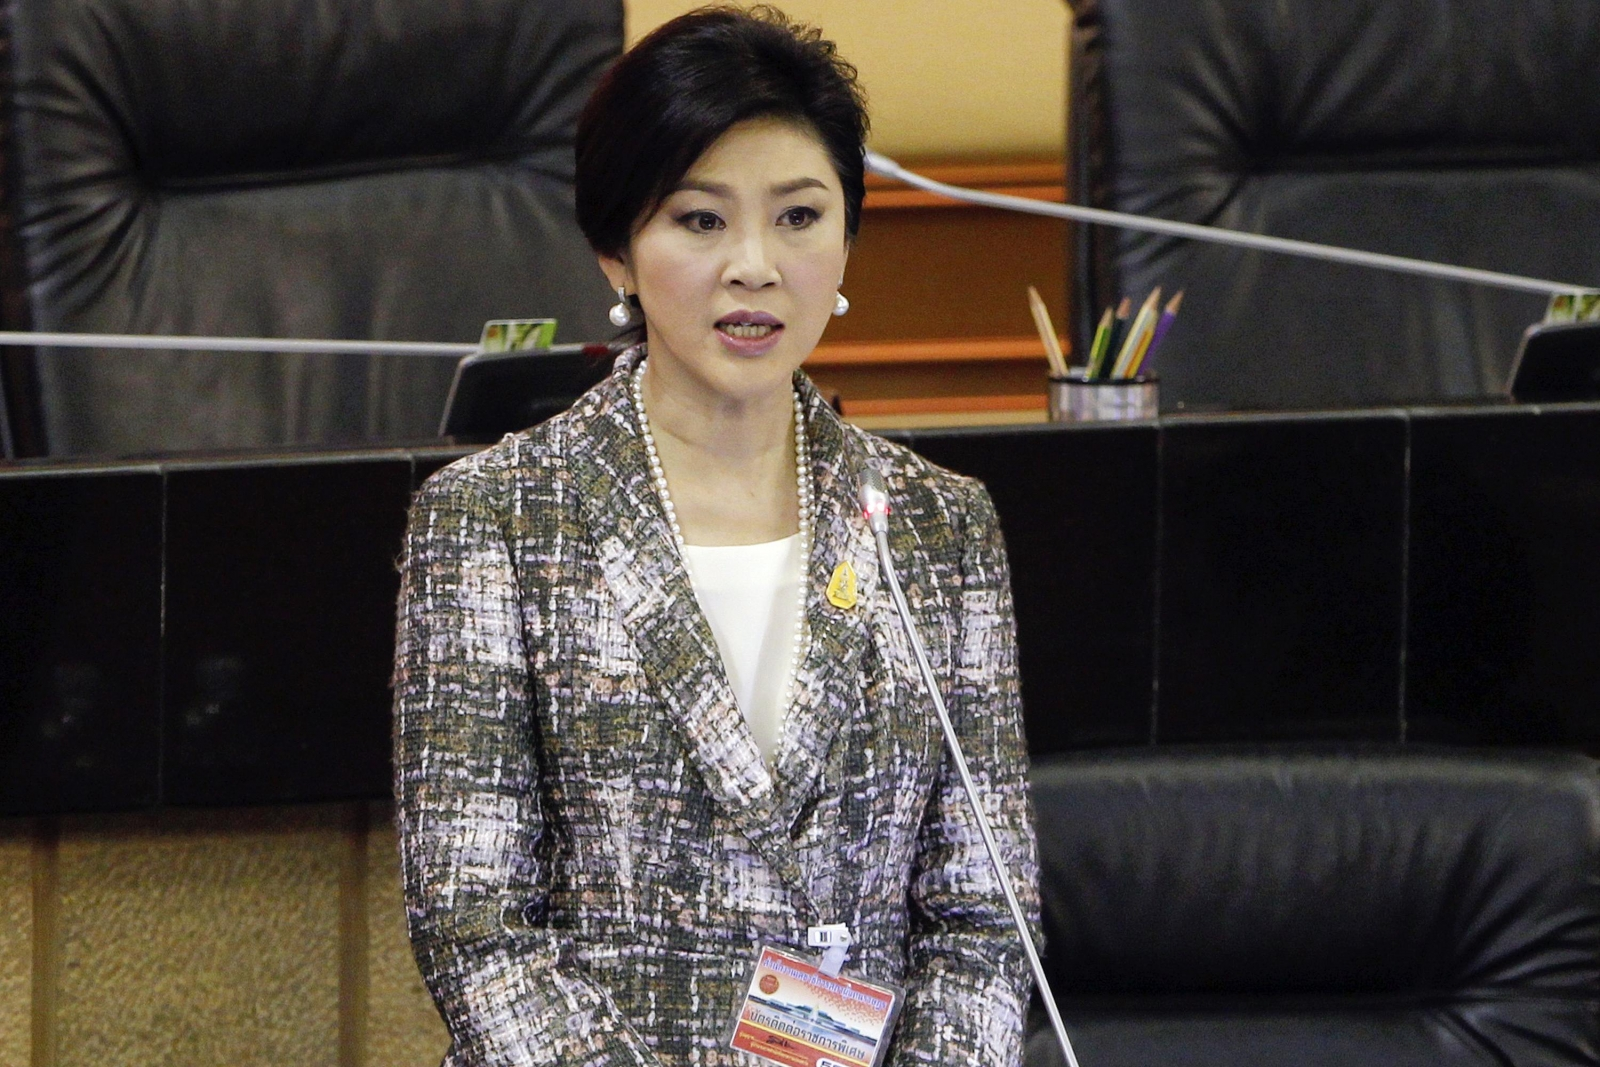 Thailand's Yingluck Shinawatra impeached by army-appointed legislature